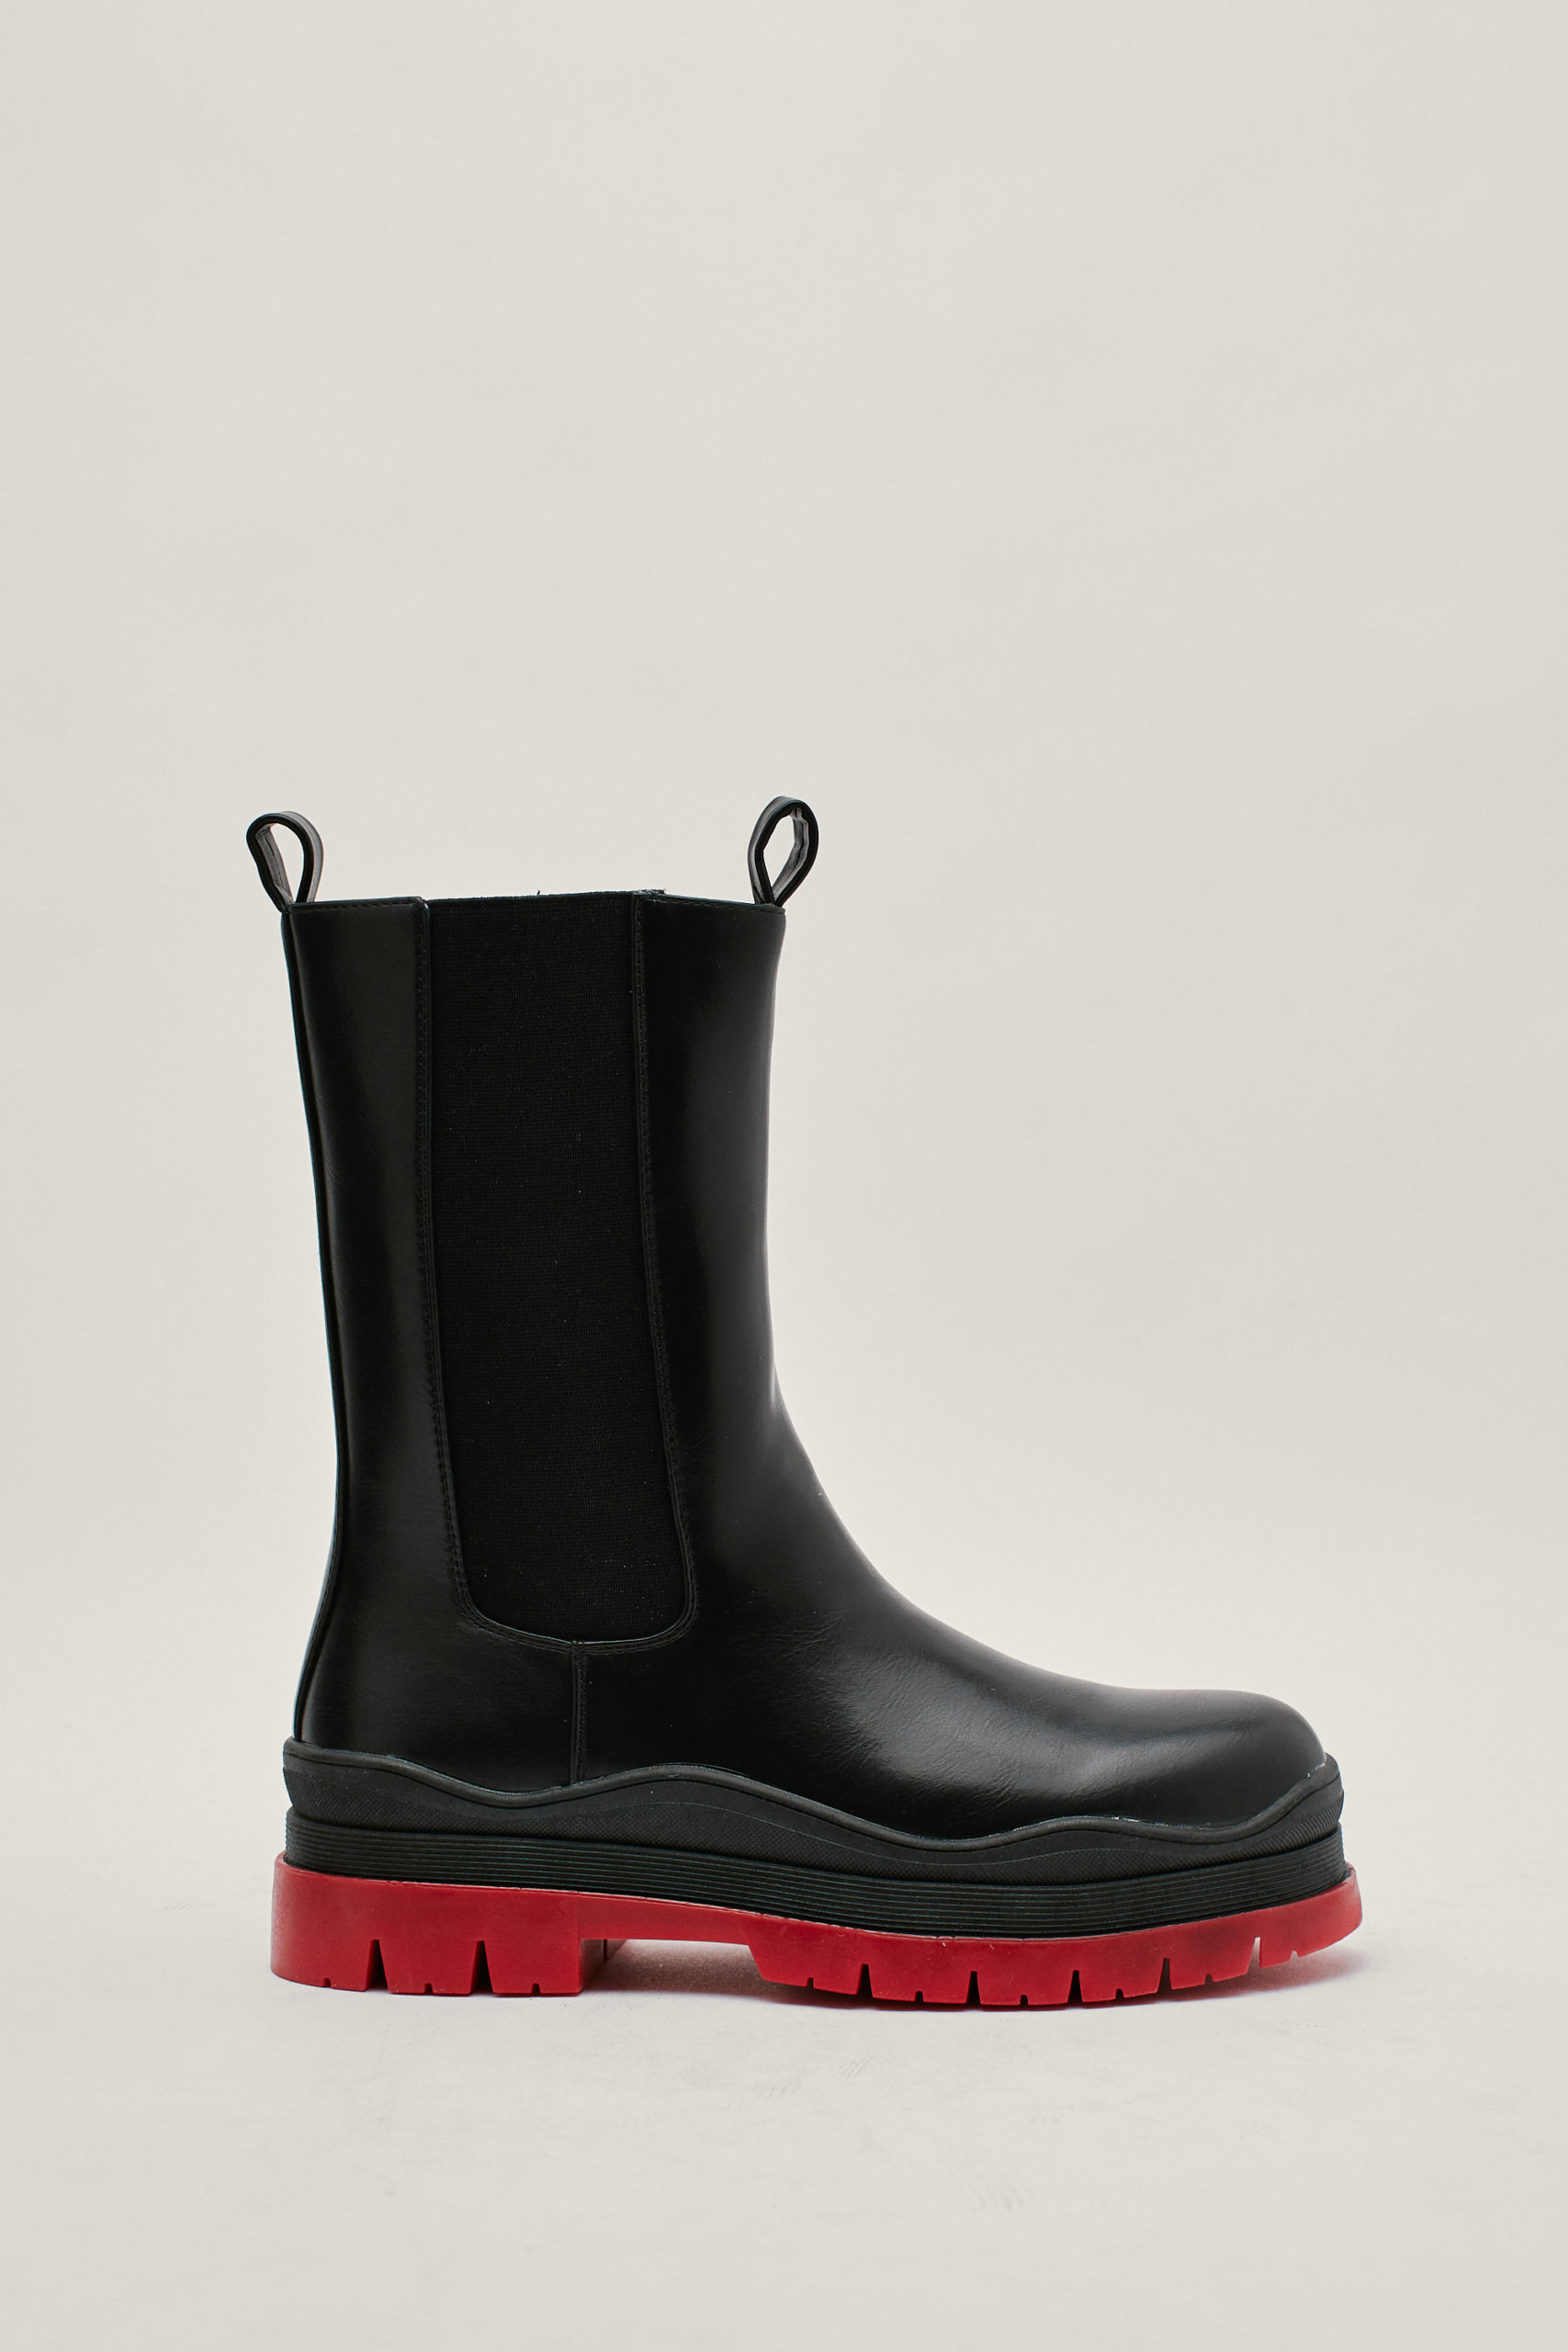 Red Sole High Chelsea Boots